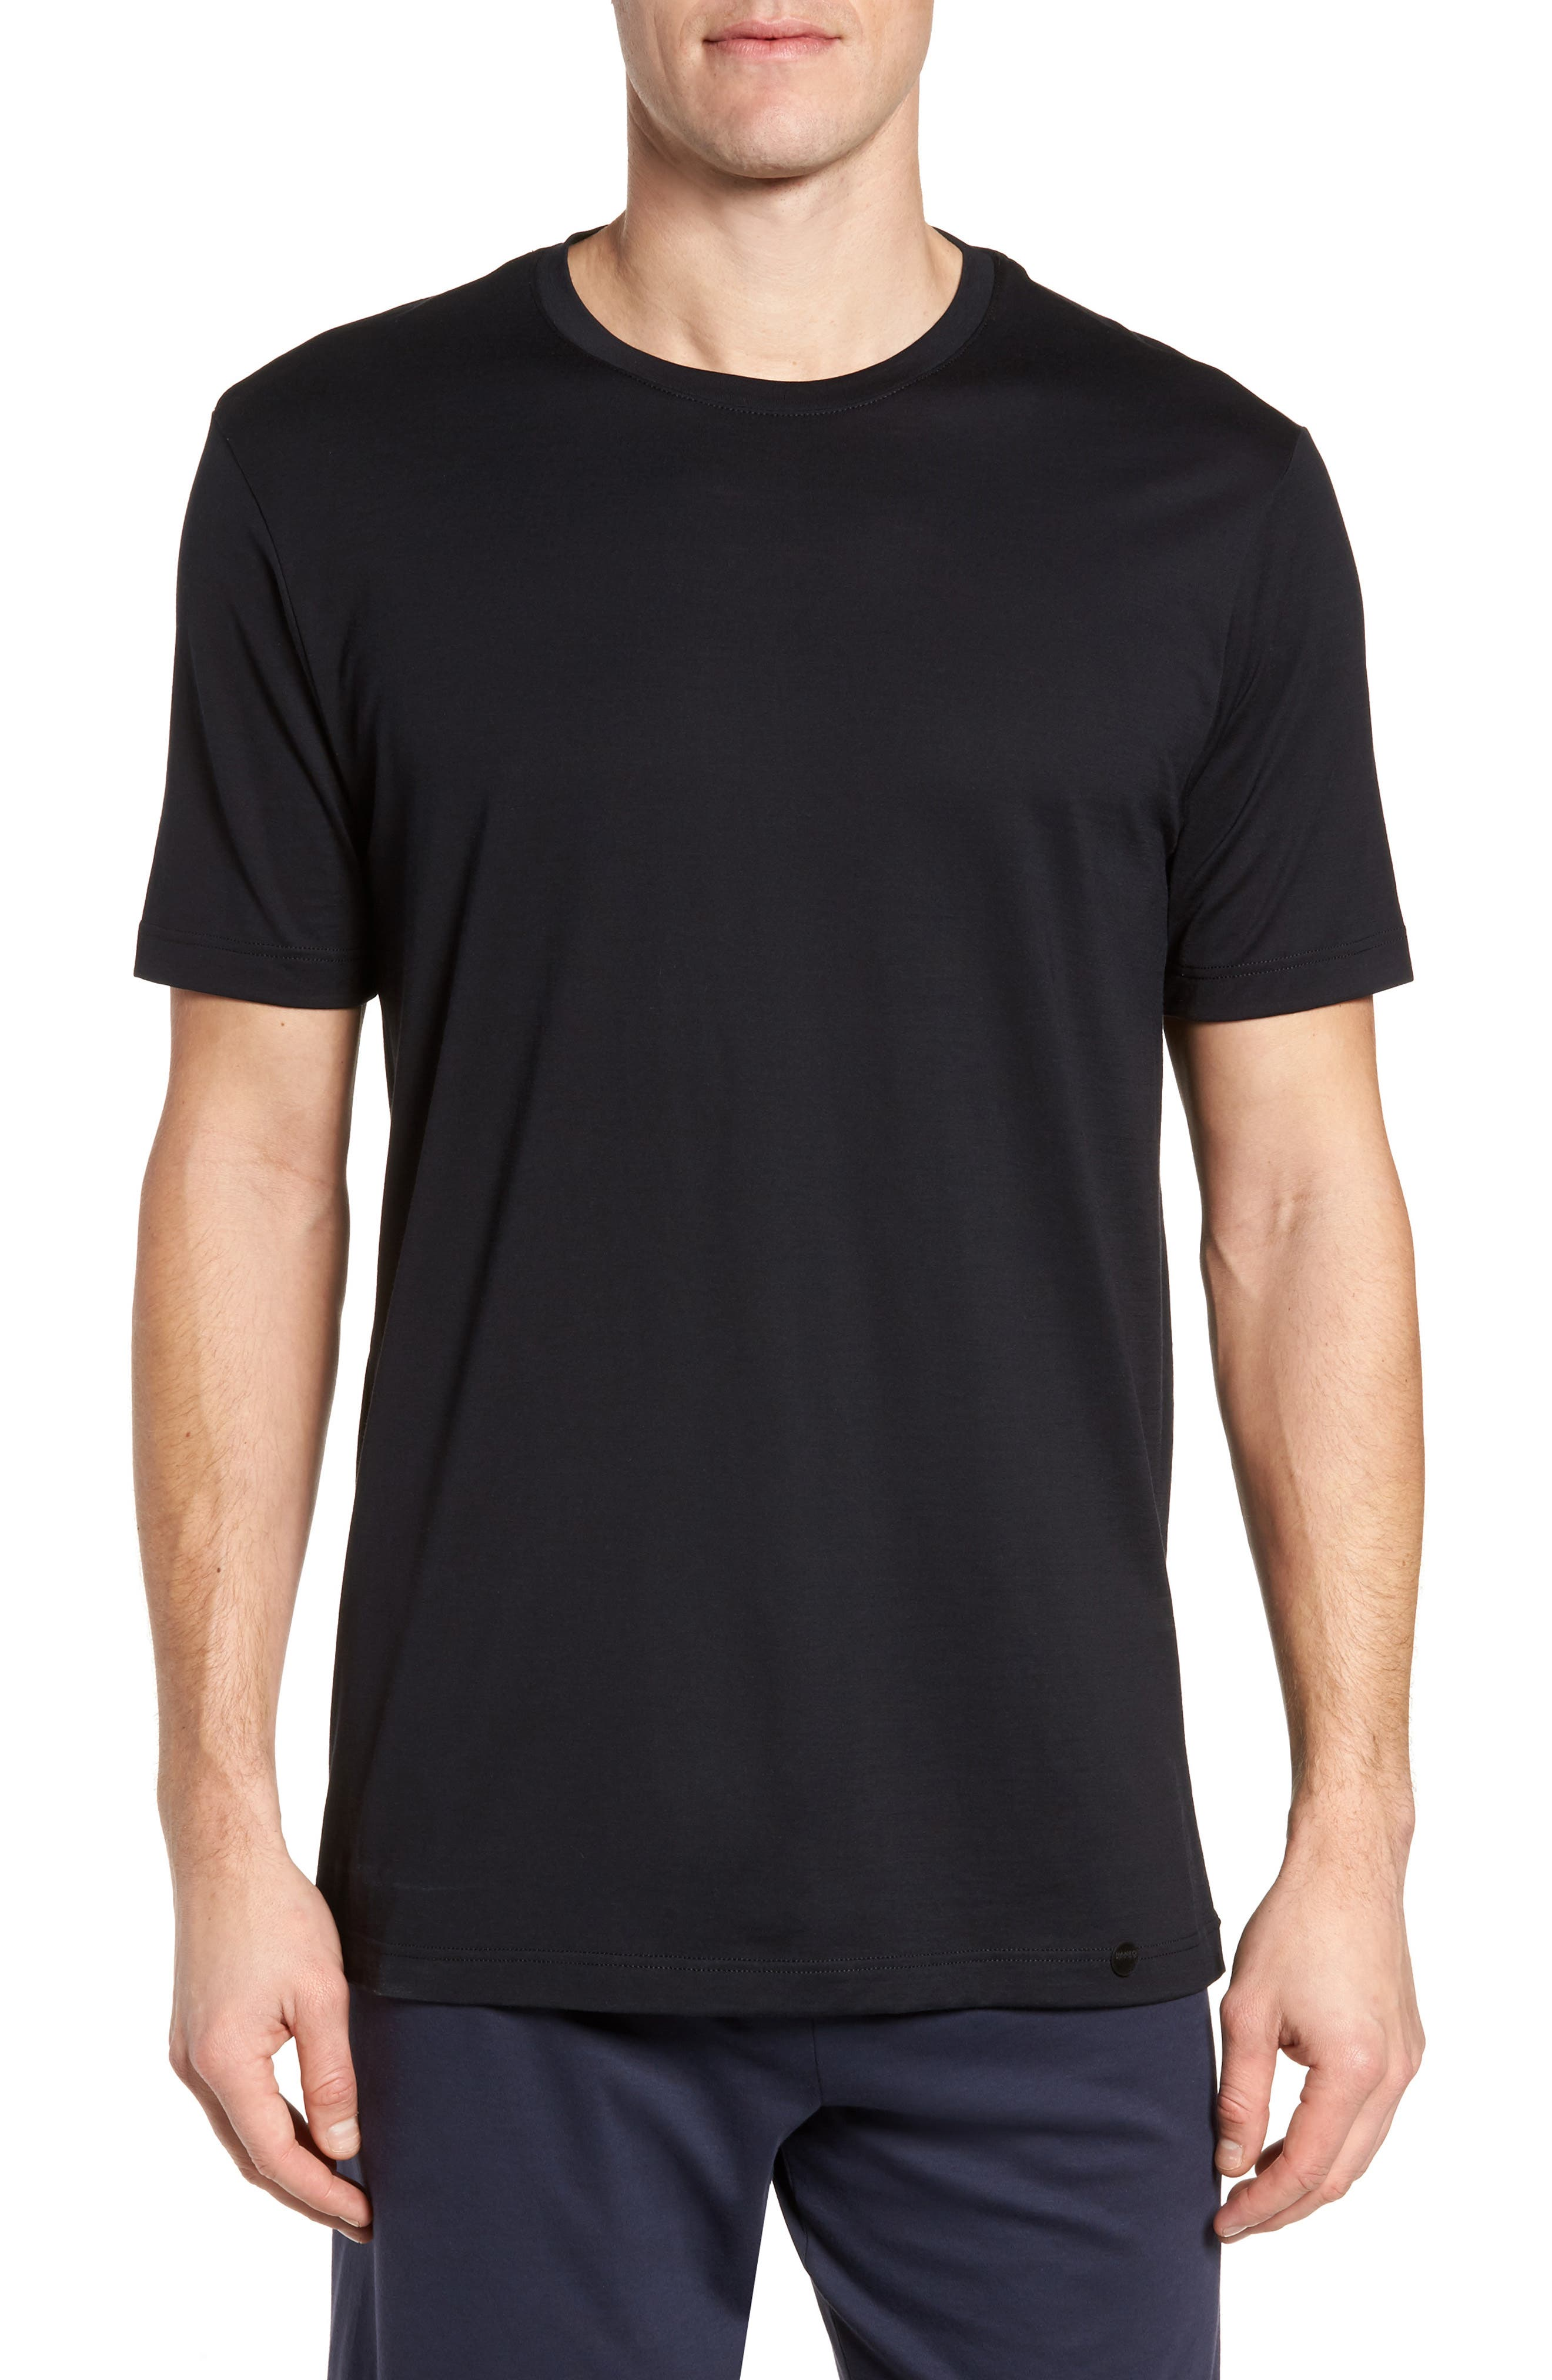 HANRO Night & Day Crewneck T-Shirt, Main, color, BLACK